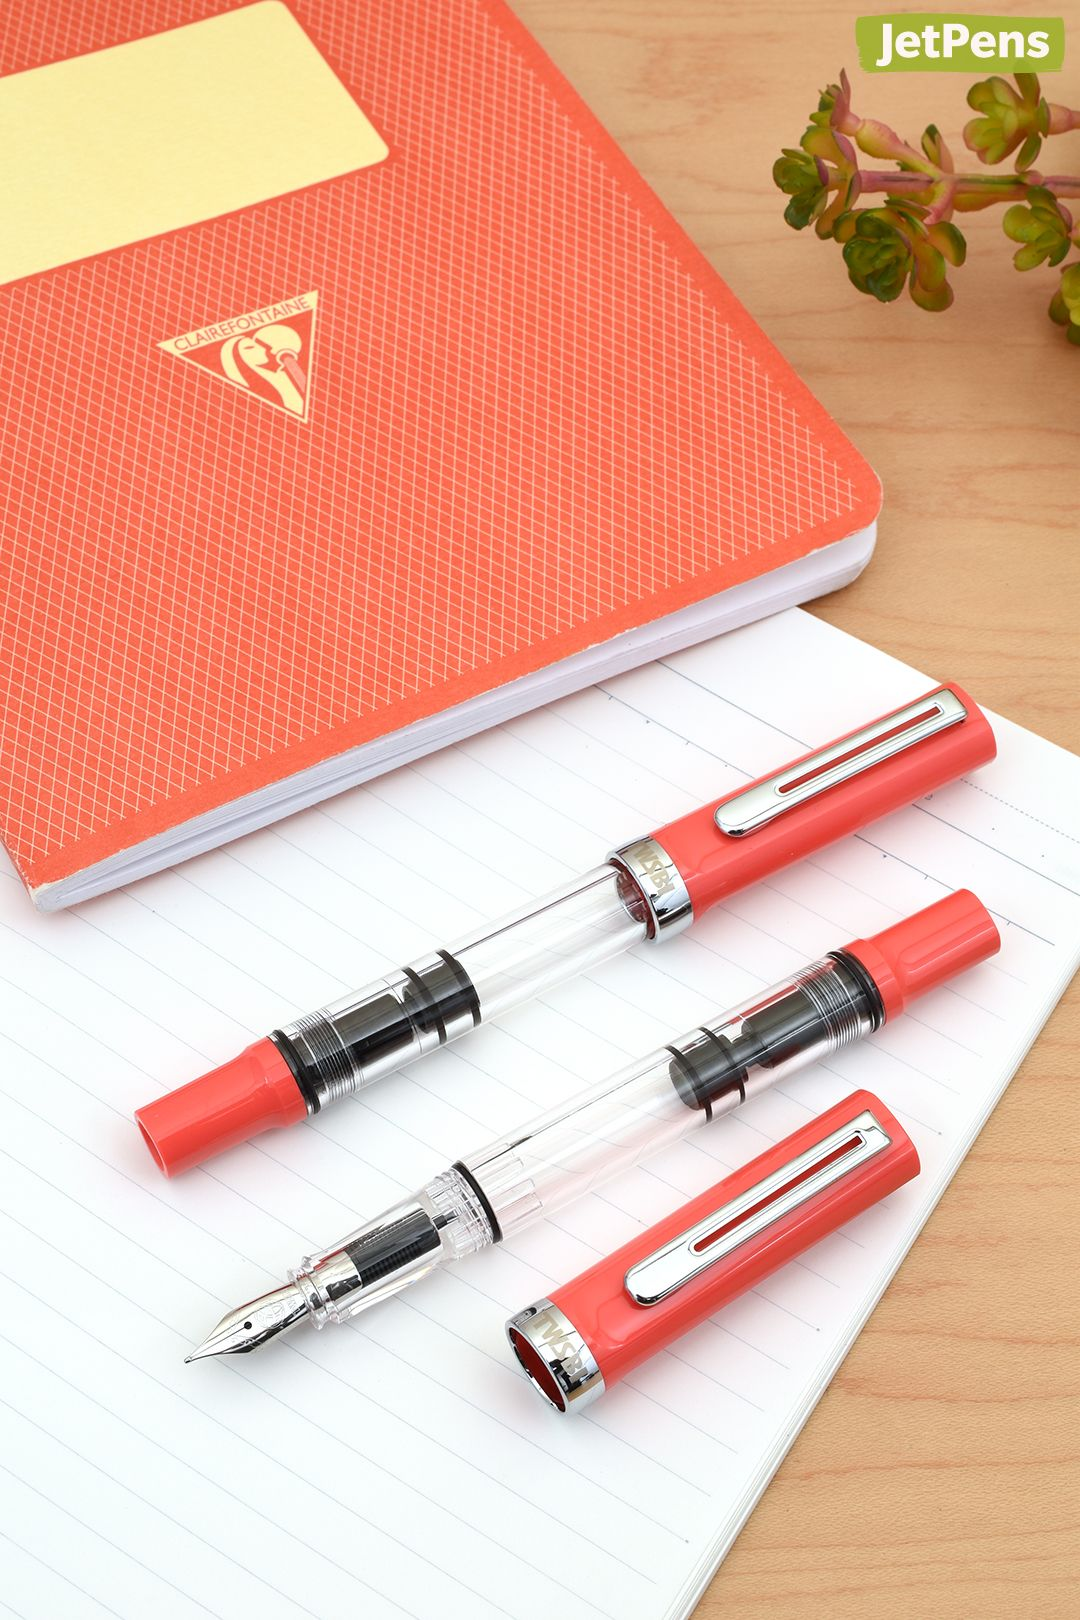 Perfect For Summer The New Twsbi Eco T Coral Limited Edition Fountain Pen Comes In A Bright Tropical Color That Would Pair Well With A C Jet Pens New Pen Pen